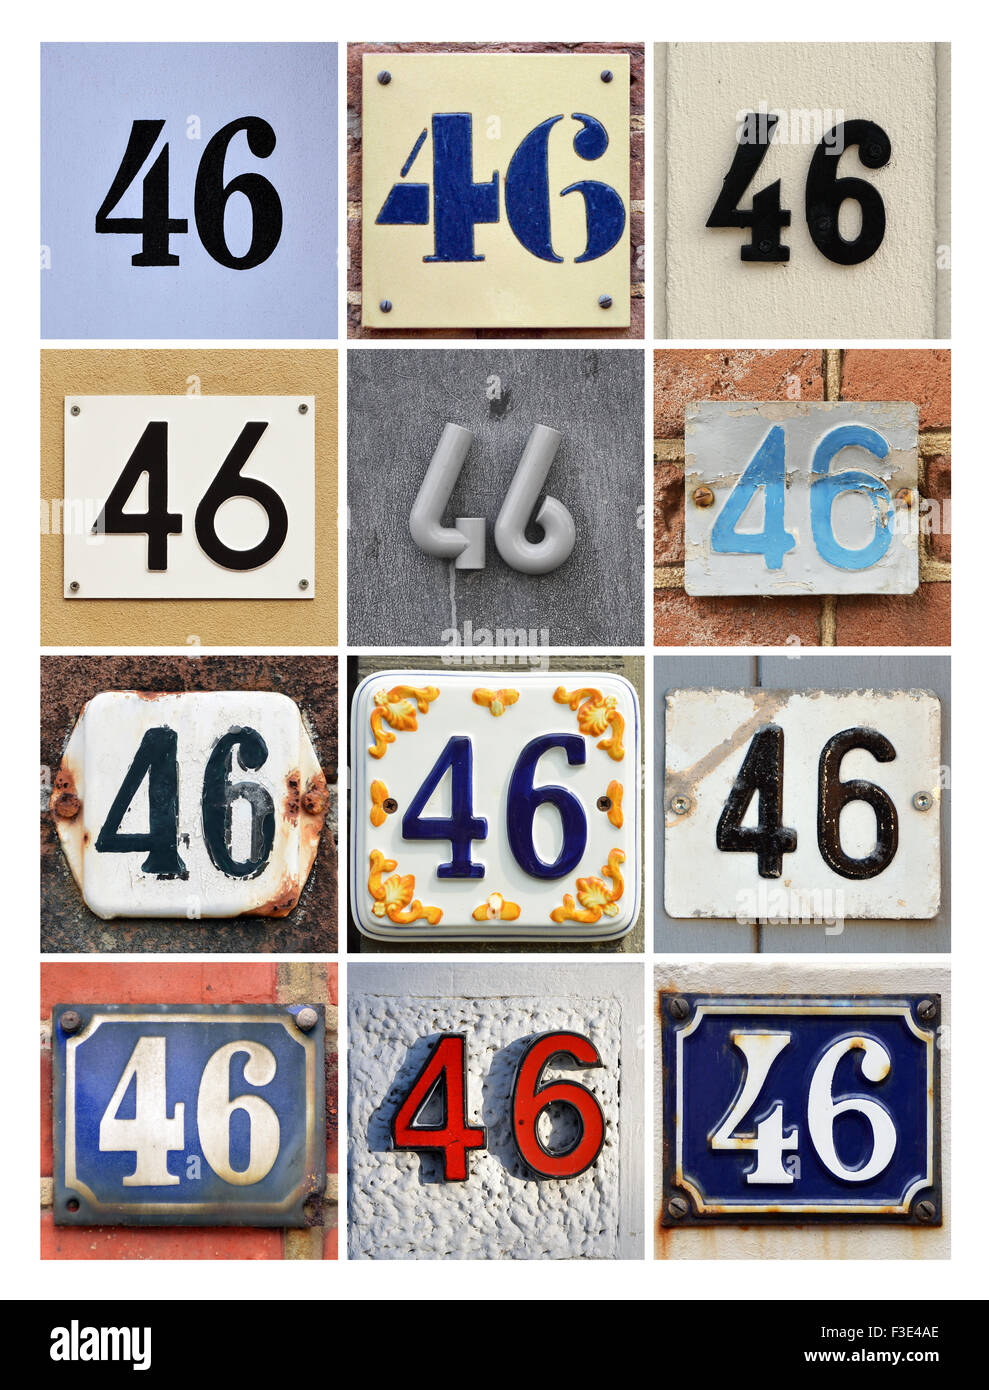 Number 46 - Stock Image